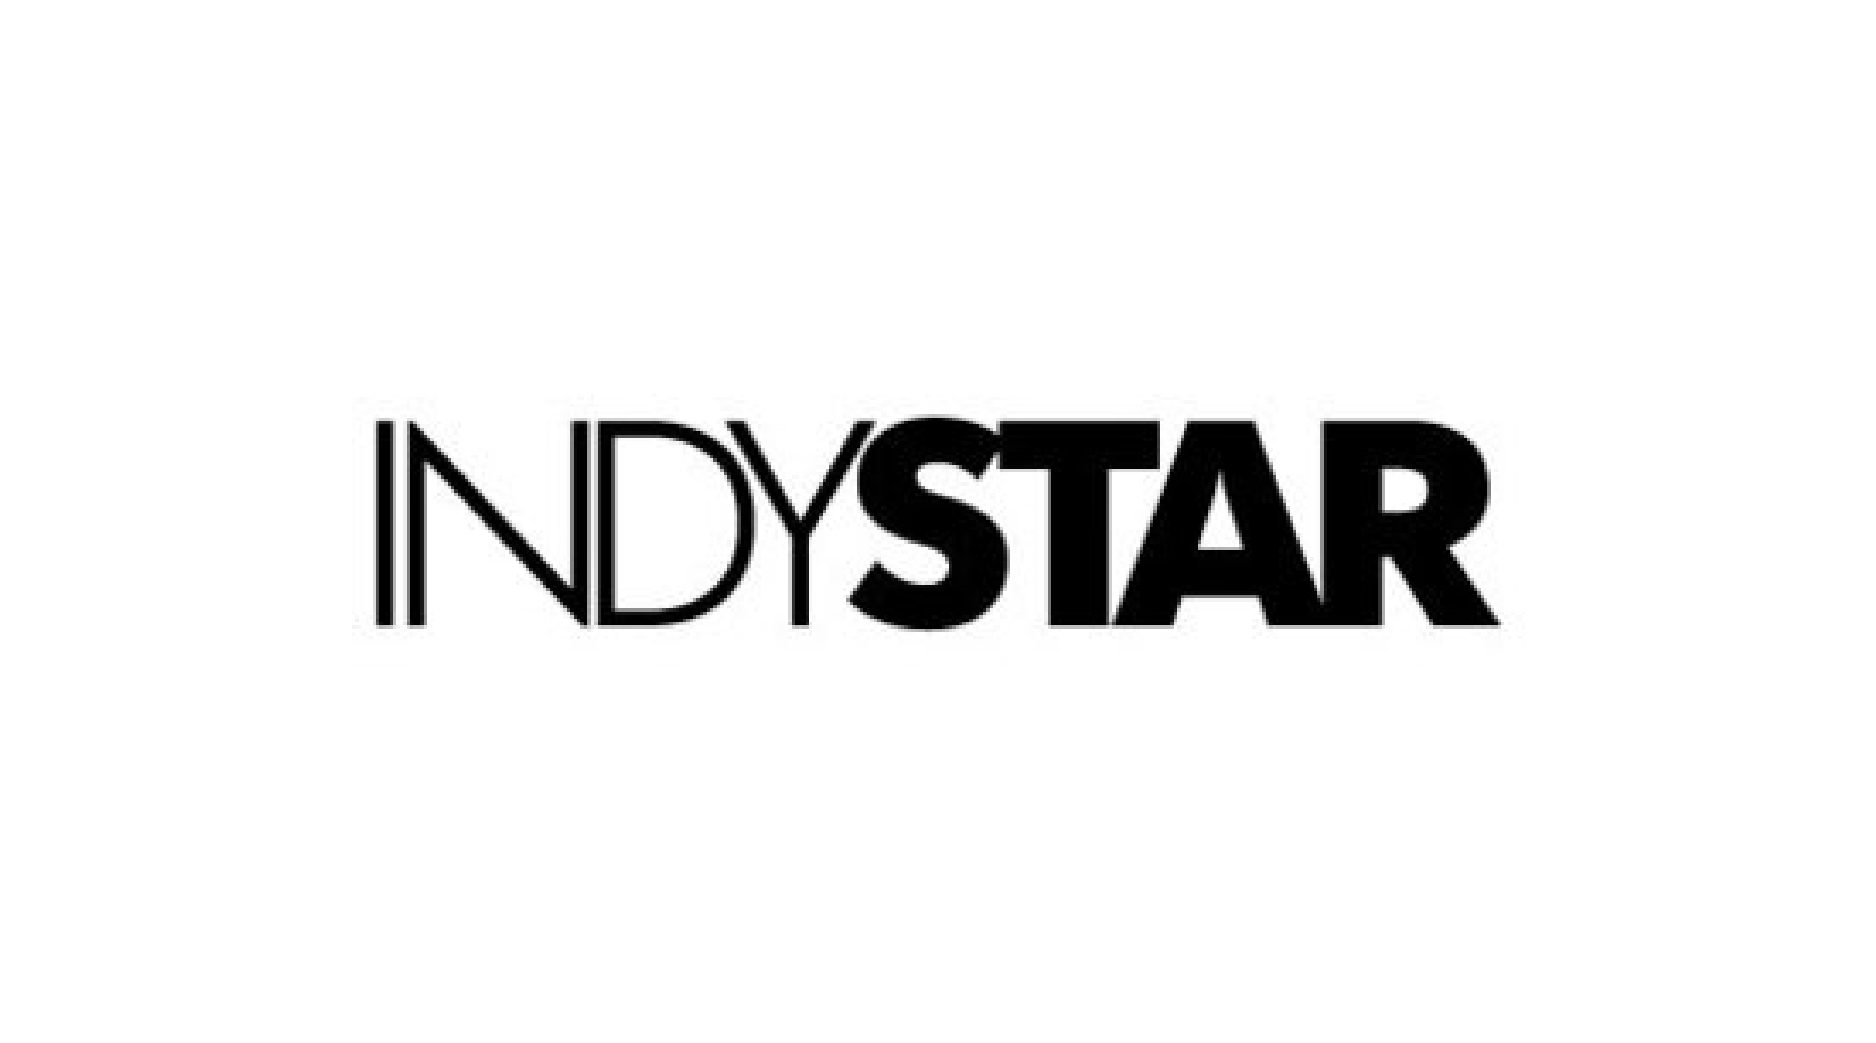 logo_indy-star.png